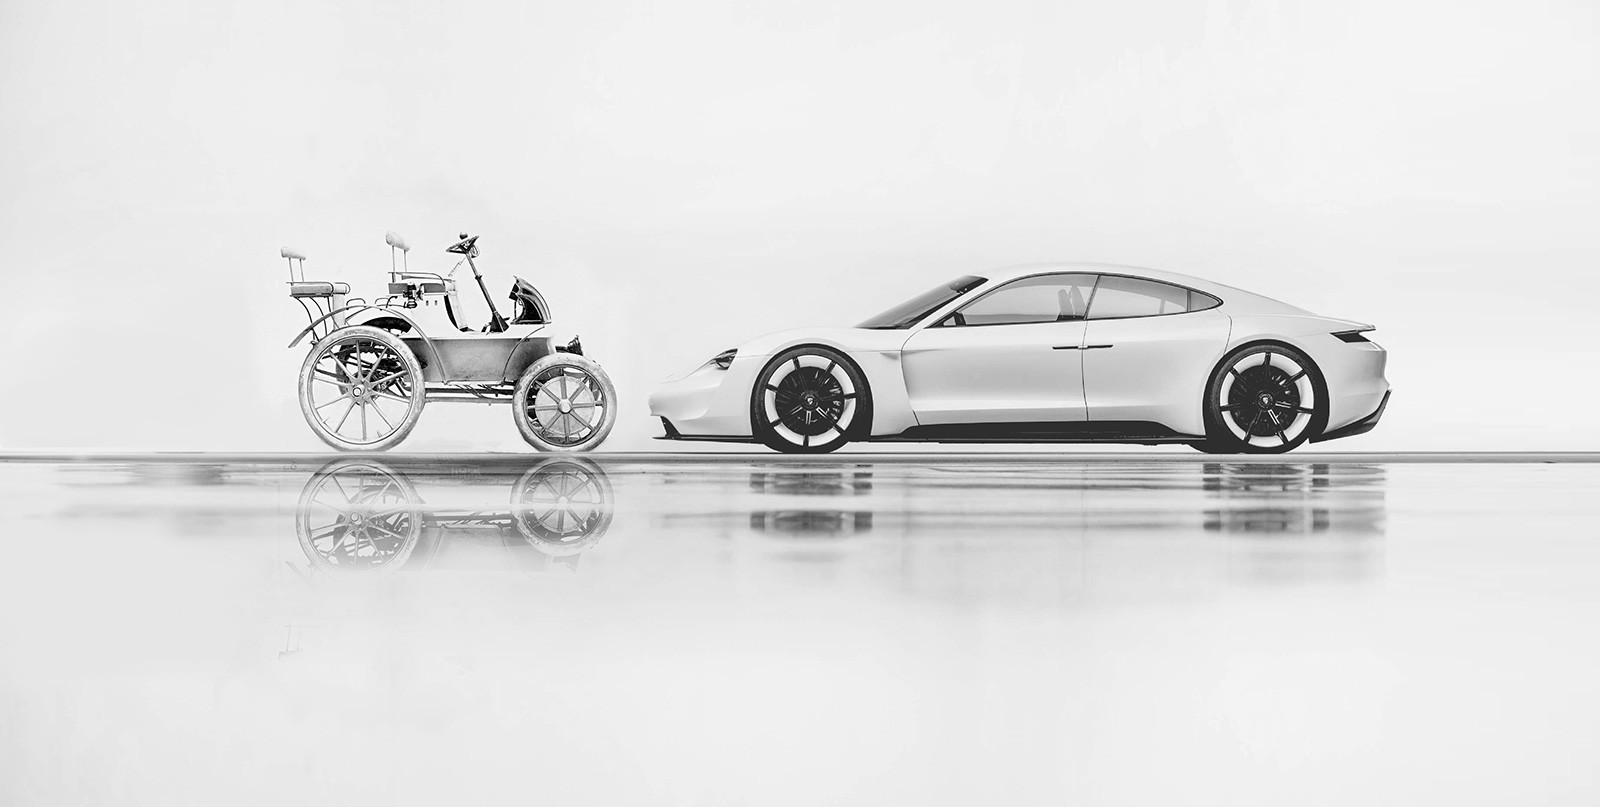 2020 Porsche Taycan Meets an Electric Porsche from 1898